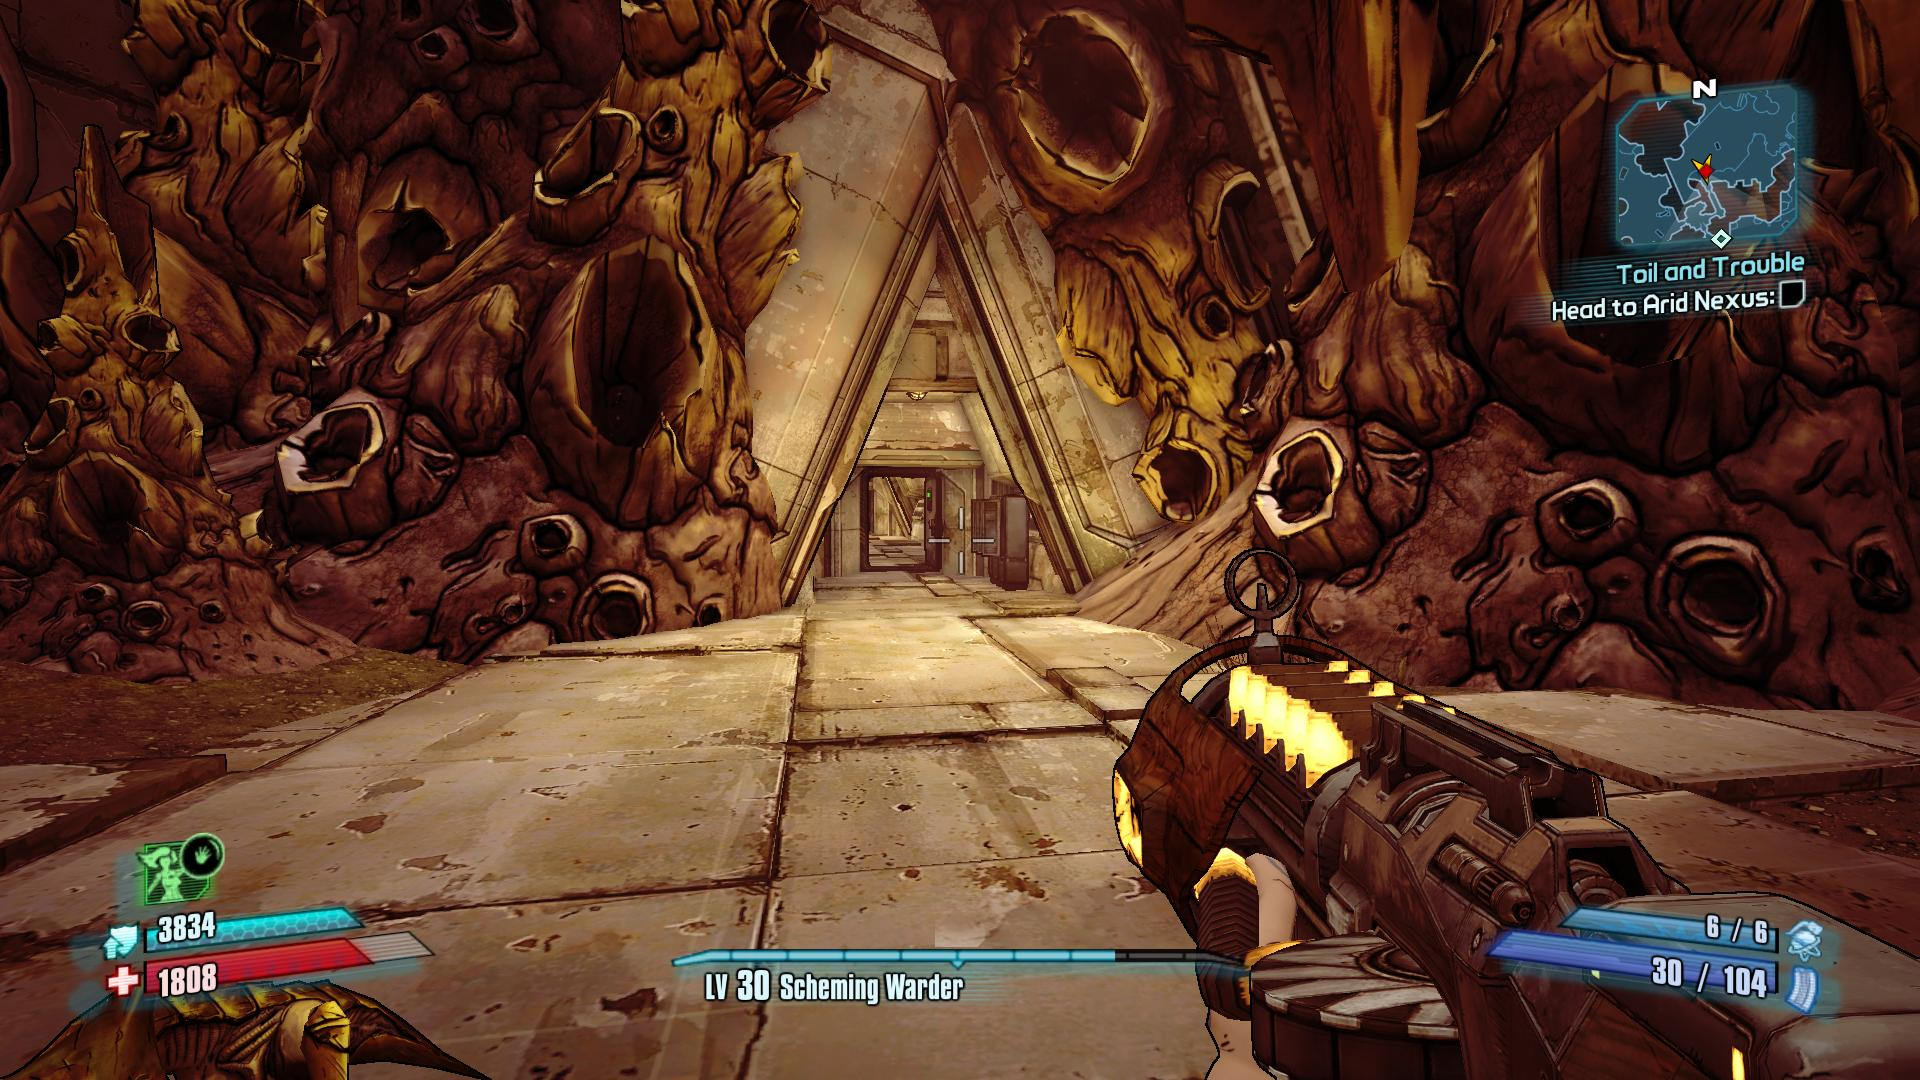 Borderlands 2 Guide: Following the Clues and Getting to the